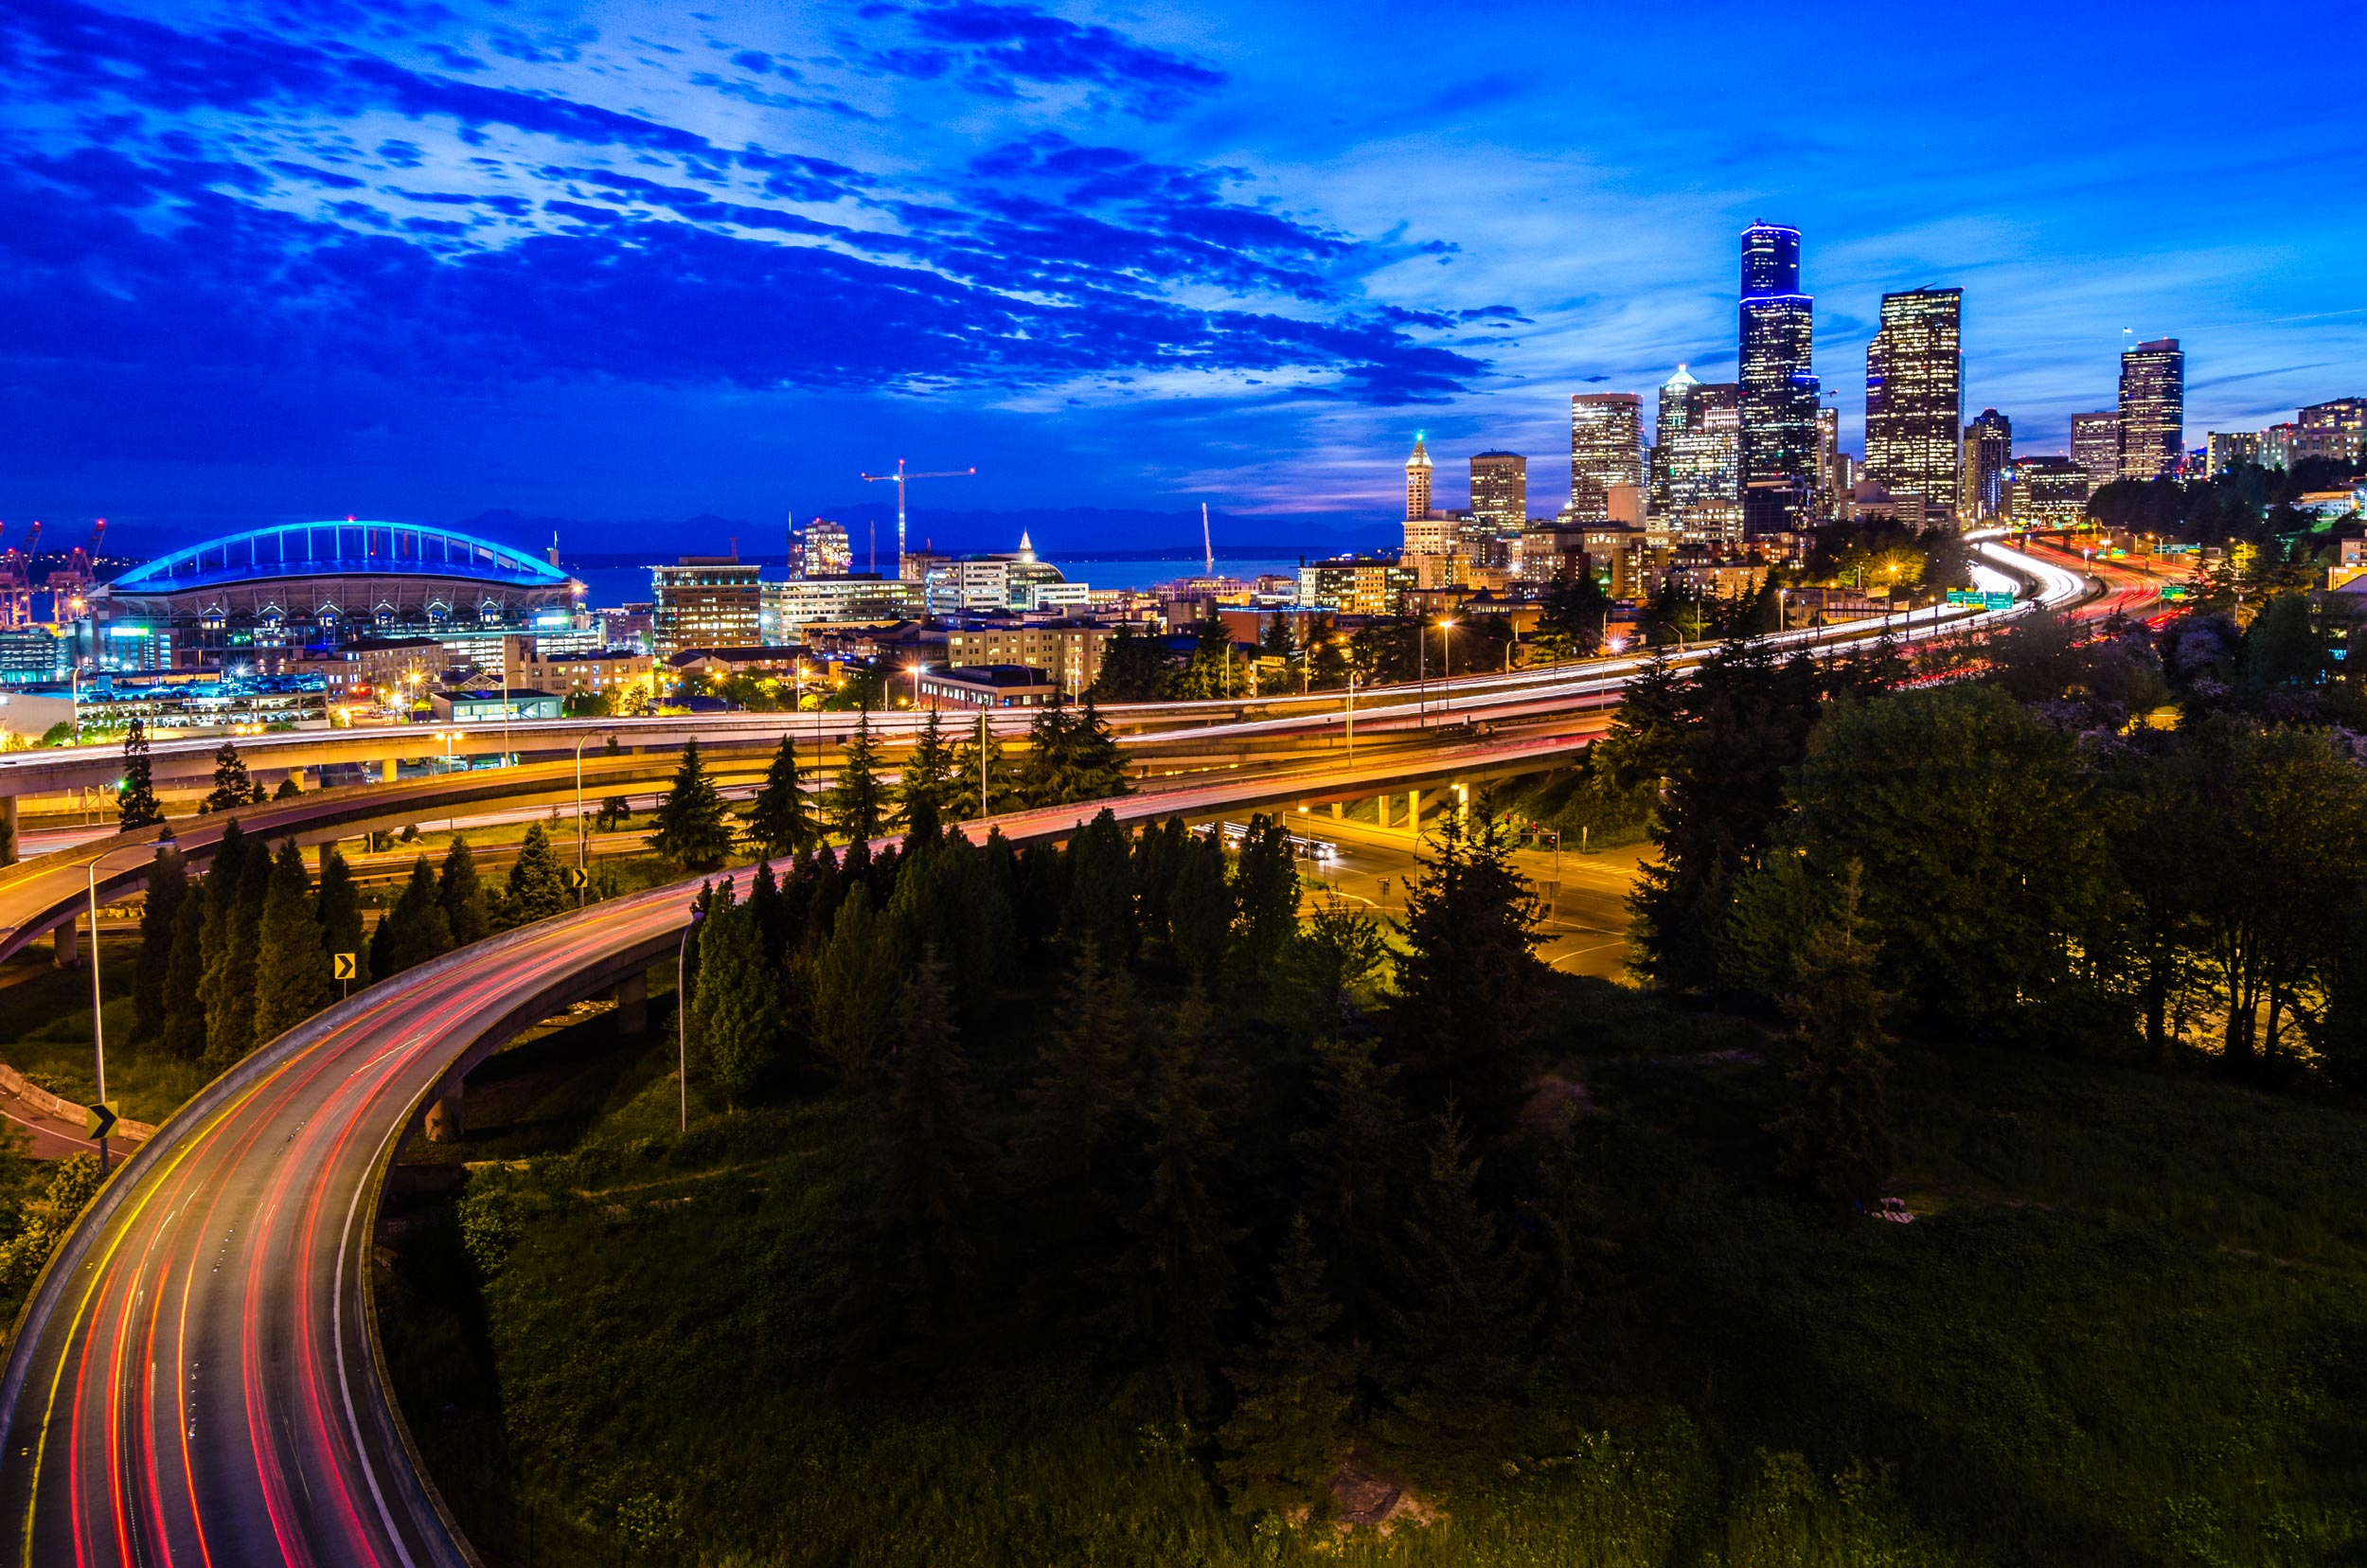 seattle skyline with light trails on the curved interstate